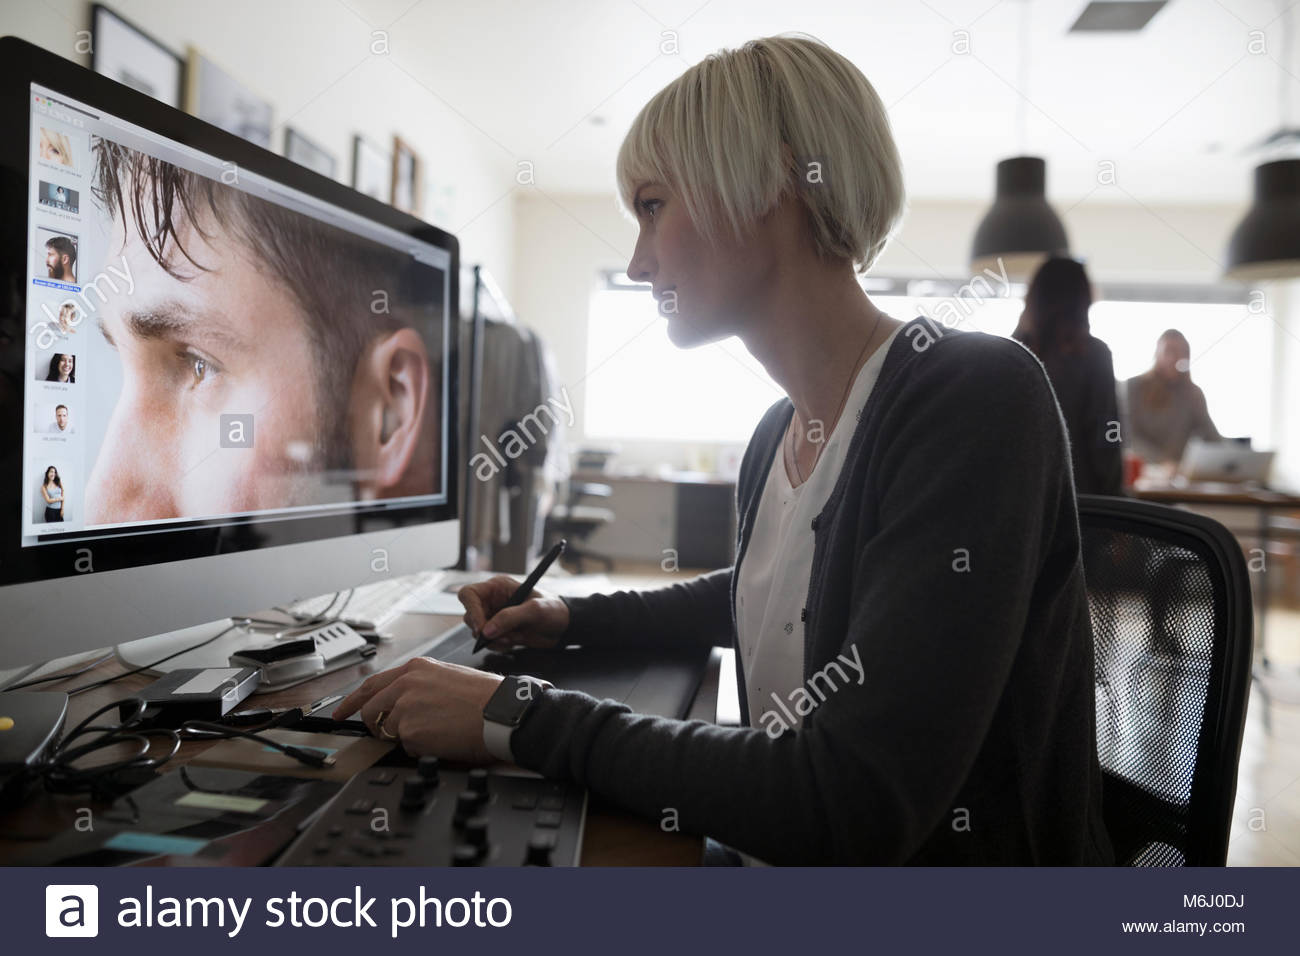 Female photo editor using graphics tablet, editing digital photograph on computer in office - Stock Image